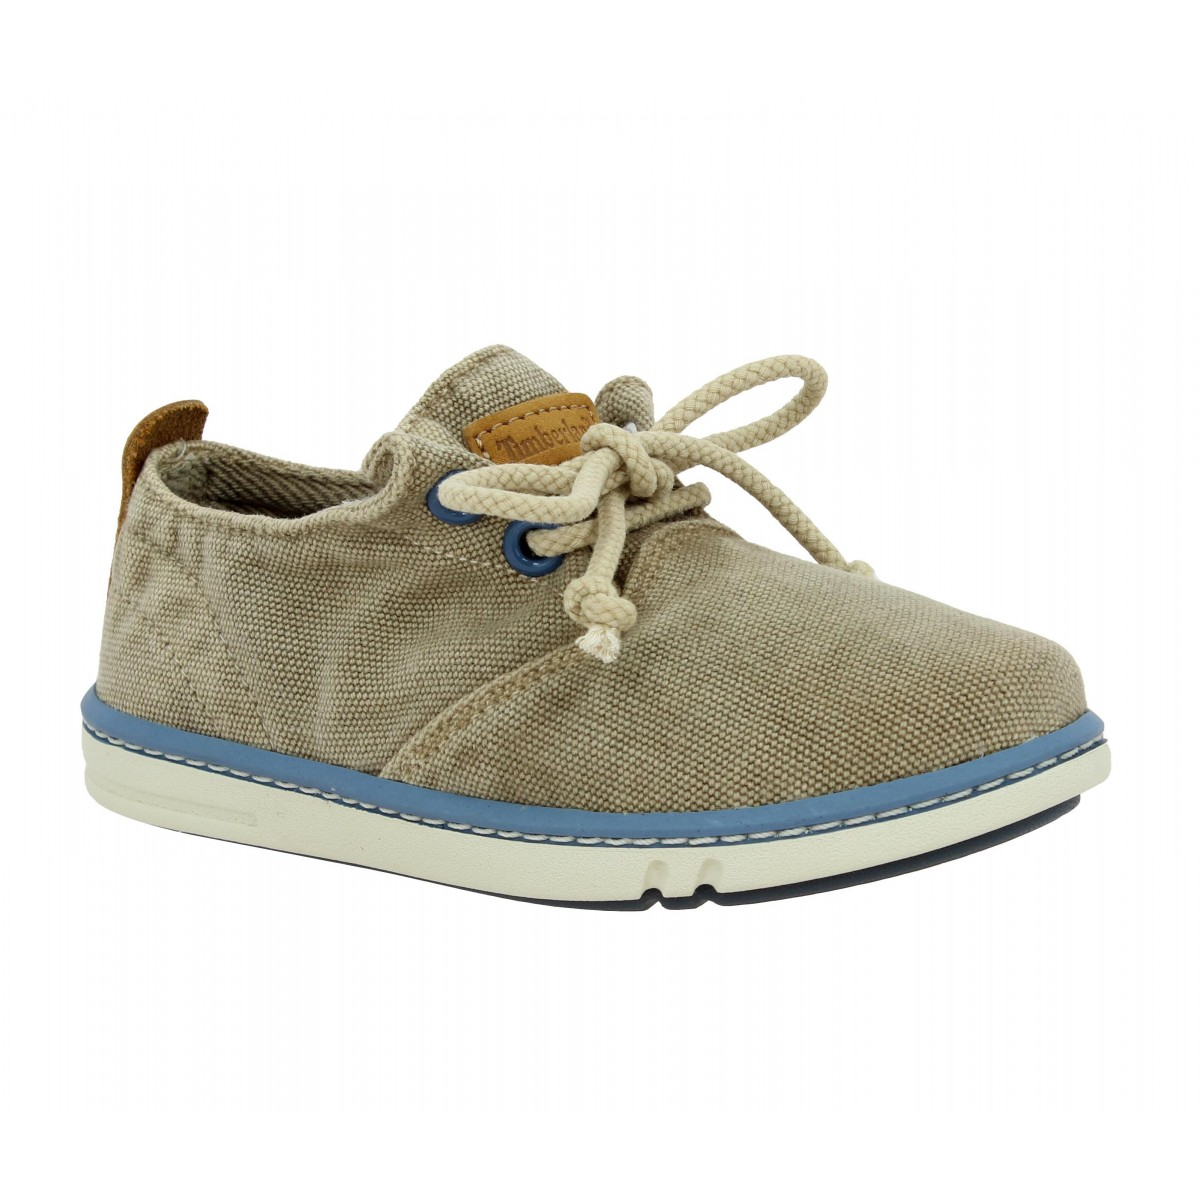 Baskets TIMBERLAND Earthkeepers Hookset Handcrafted Oxford toile Enfant Tan